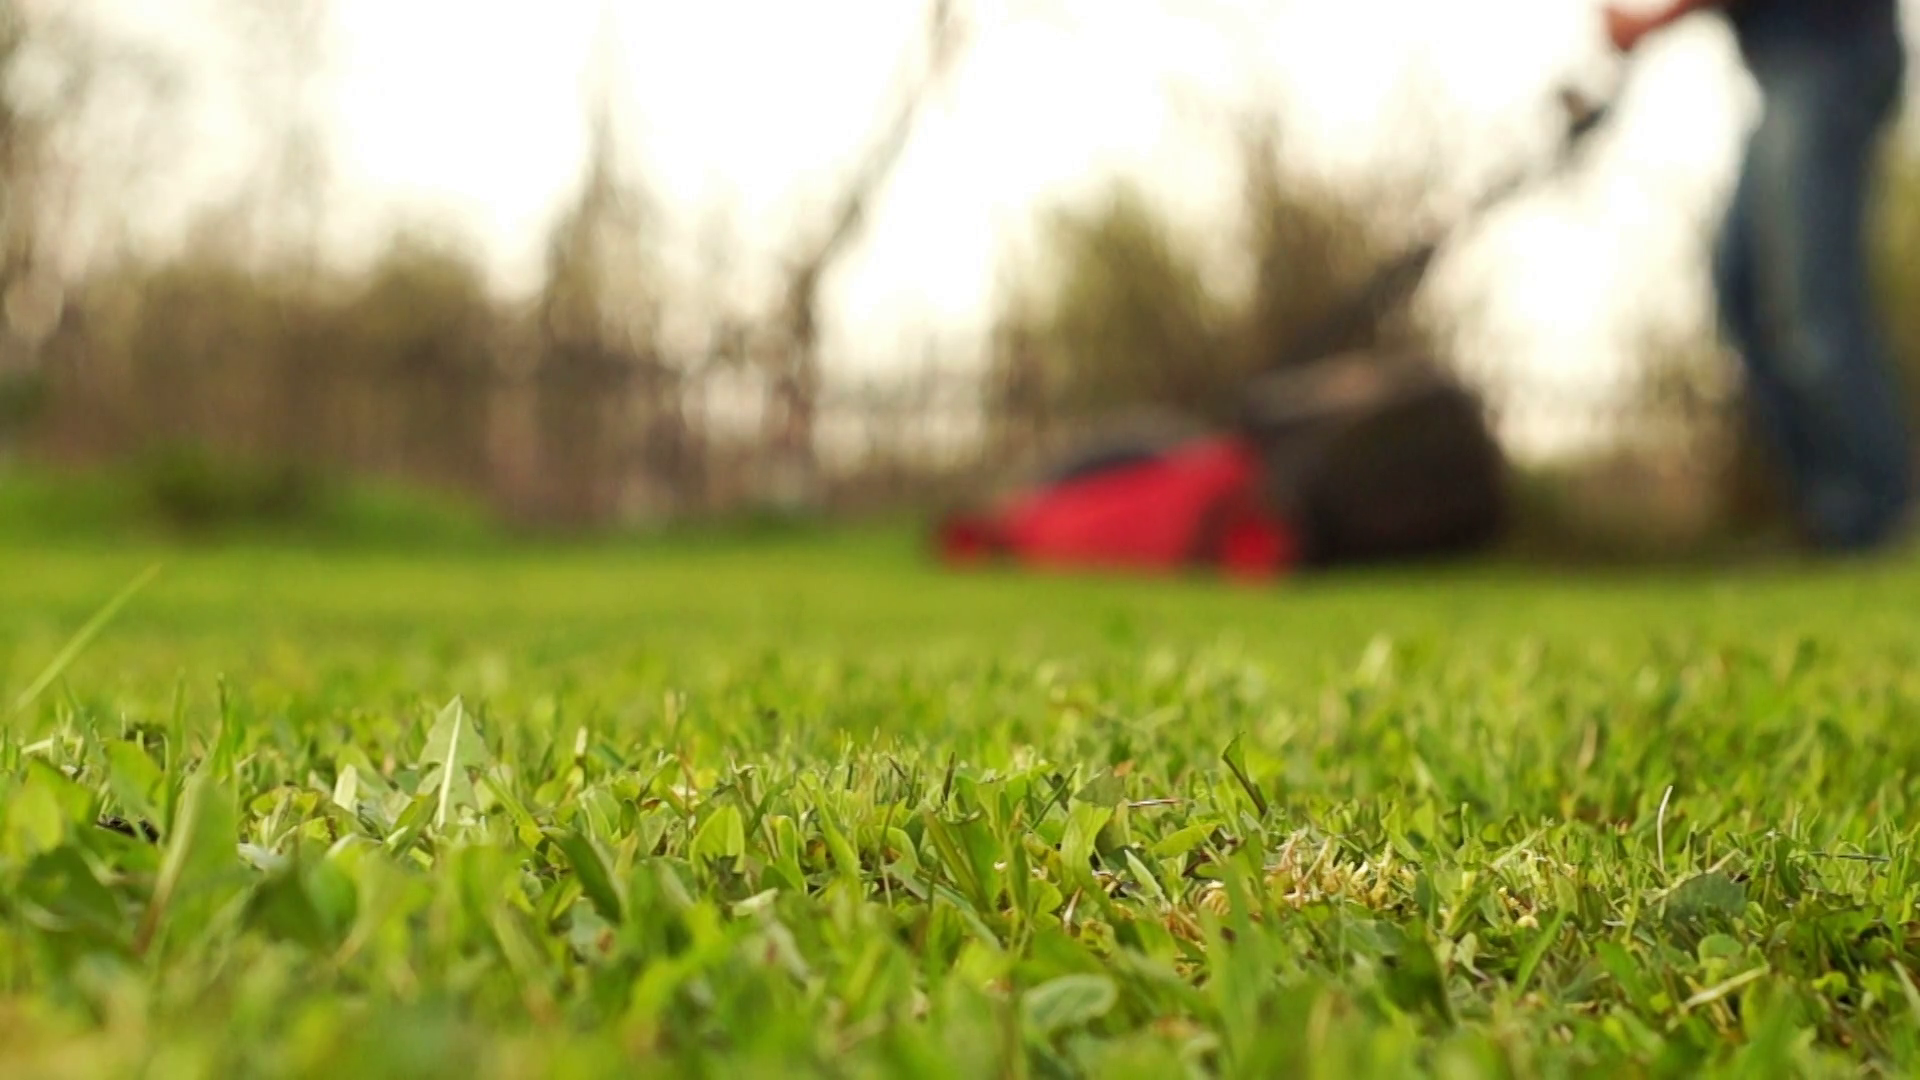 Man mowing grass in the blurred background Stock Video Footage 1920x1080